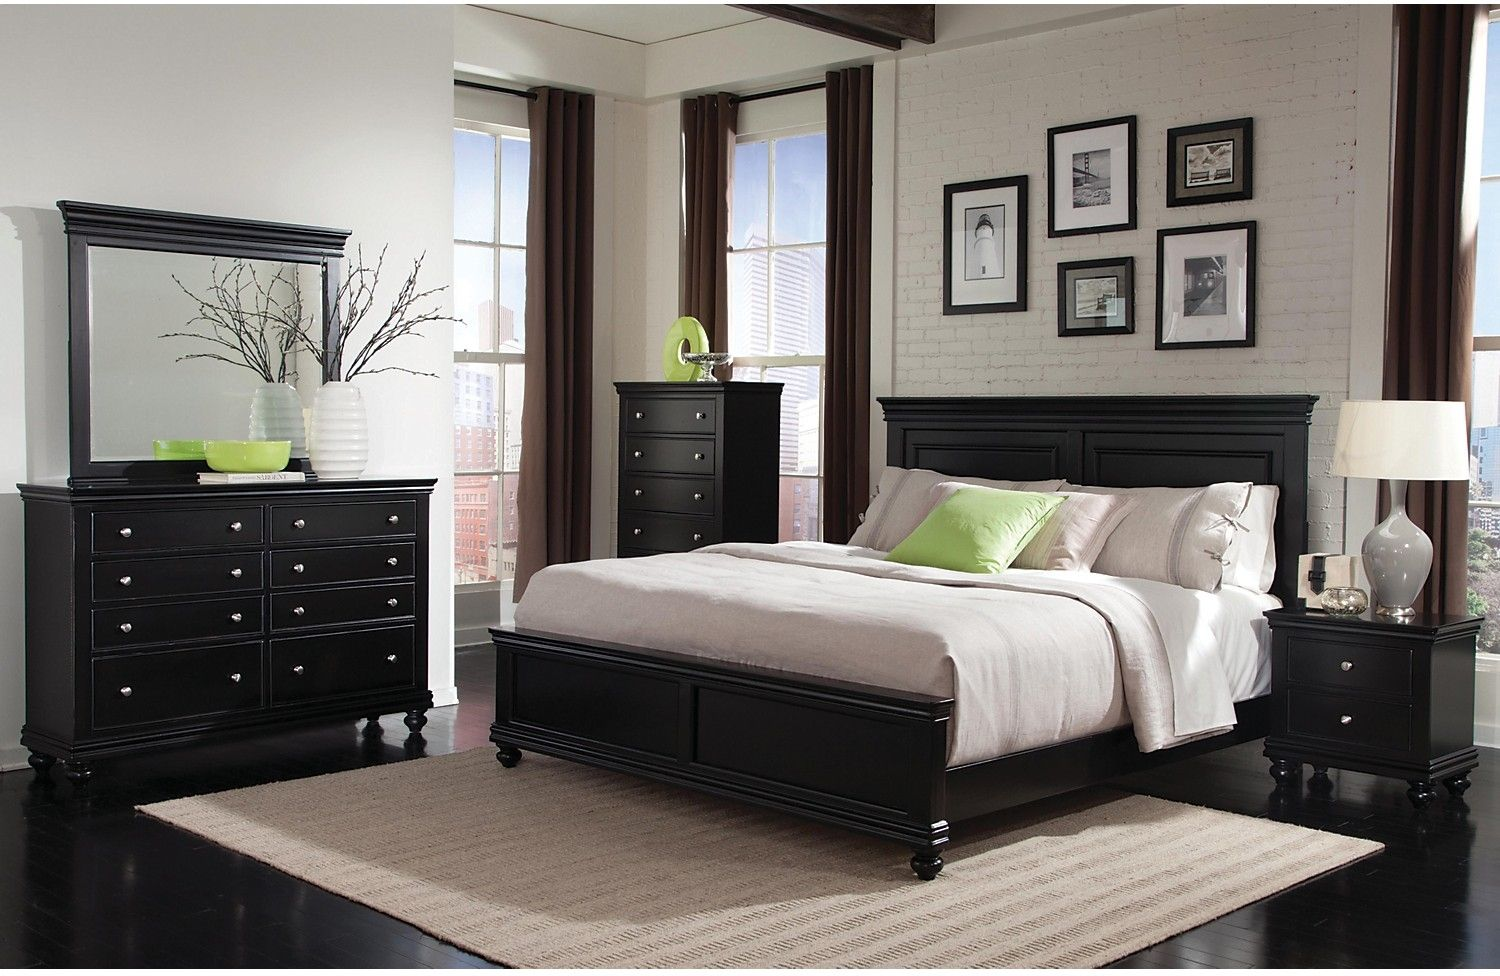 Bridgeport 5-Piece Queen Bedroom Set – Black | Bedrooms, Queen ...